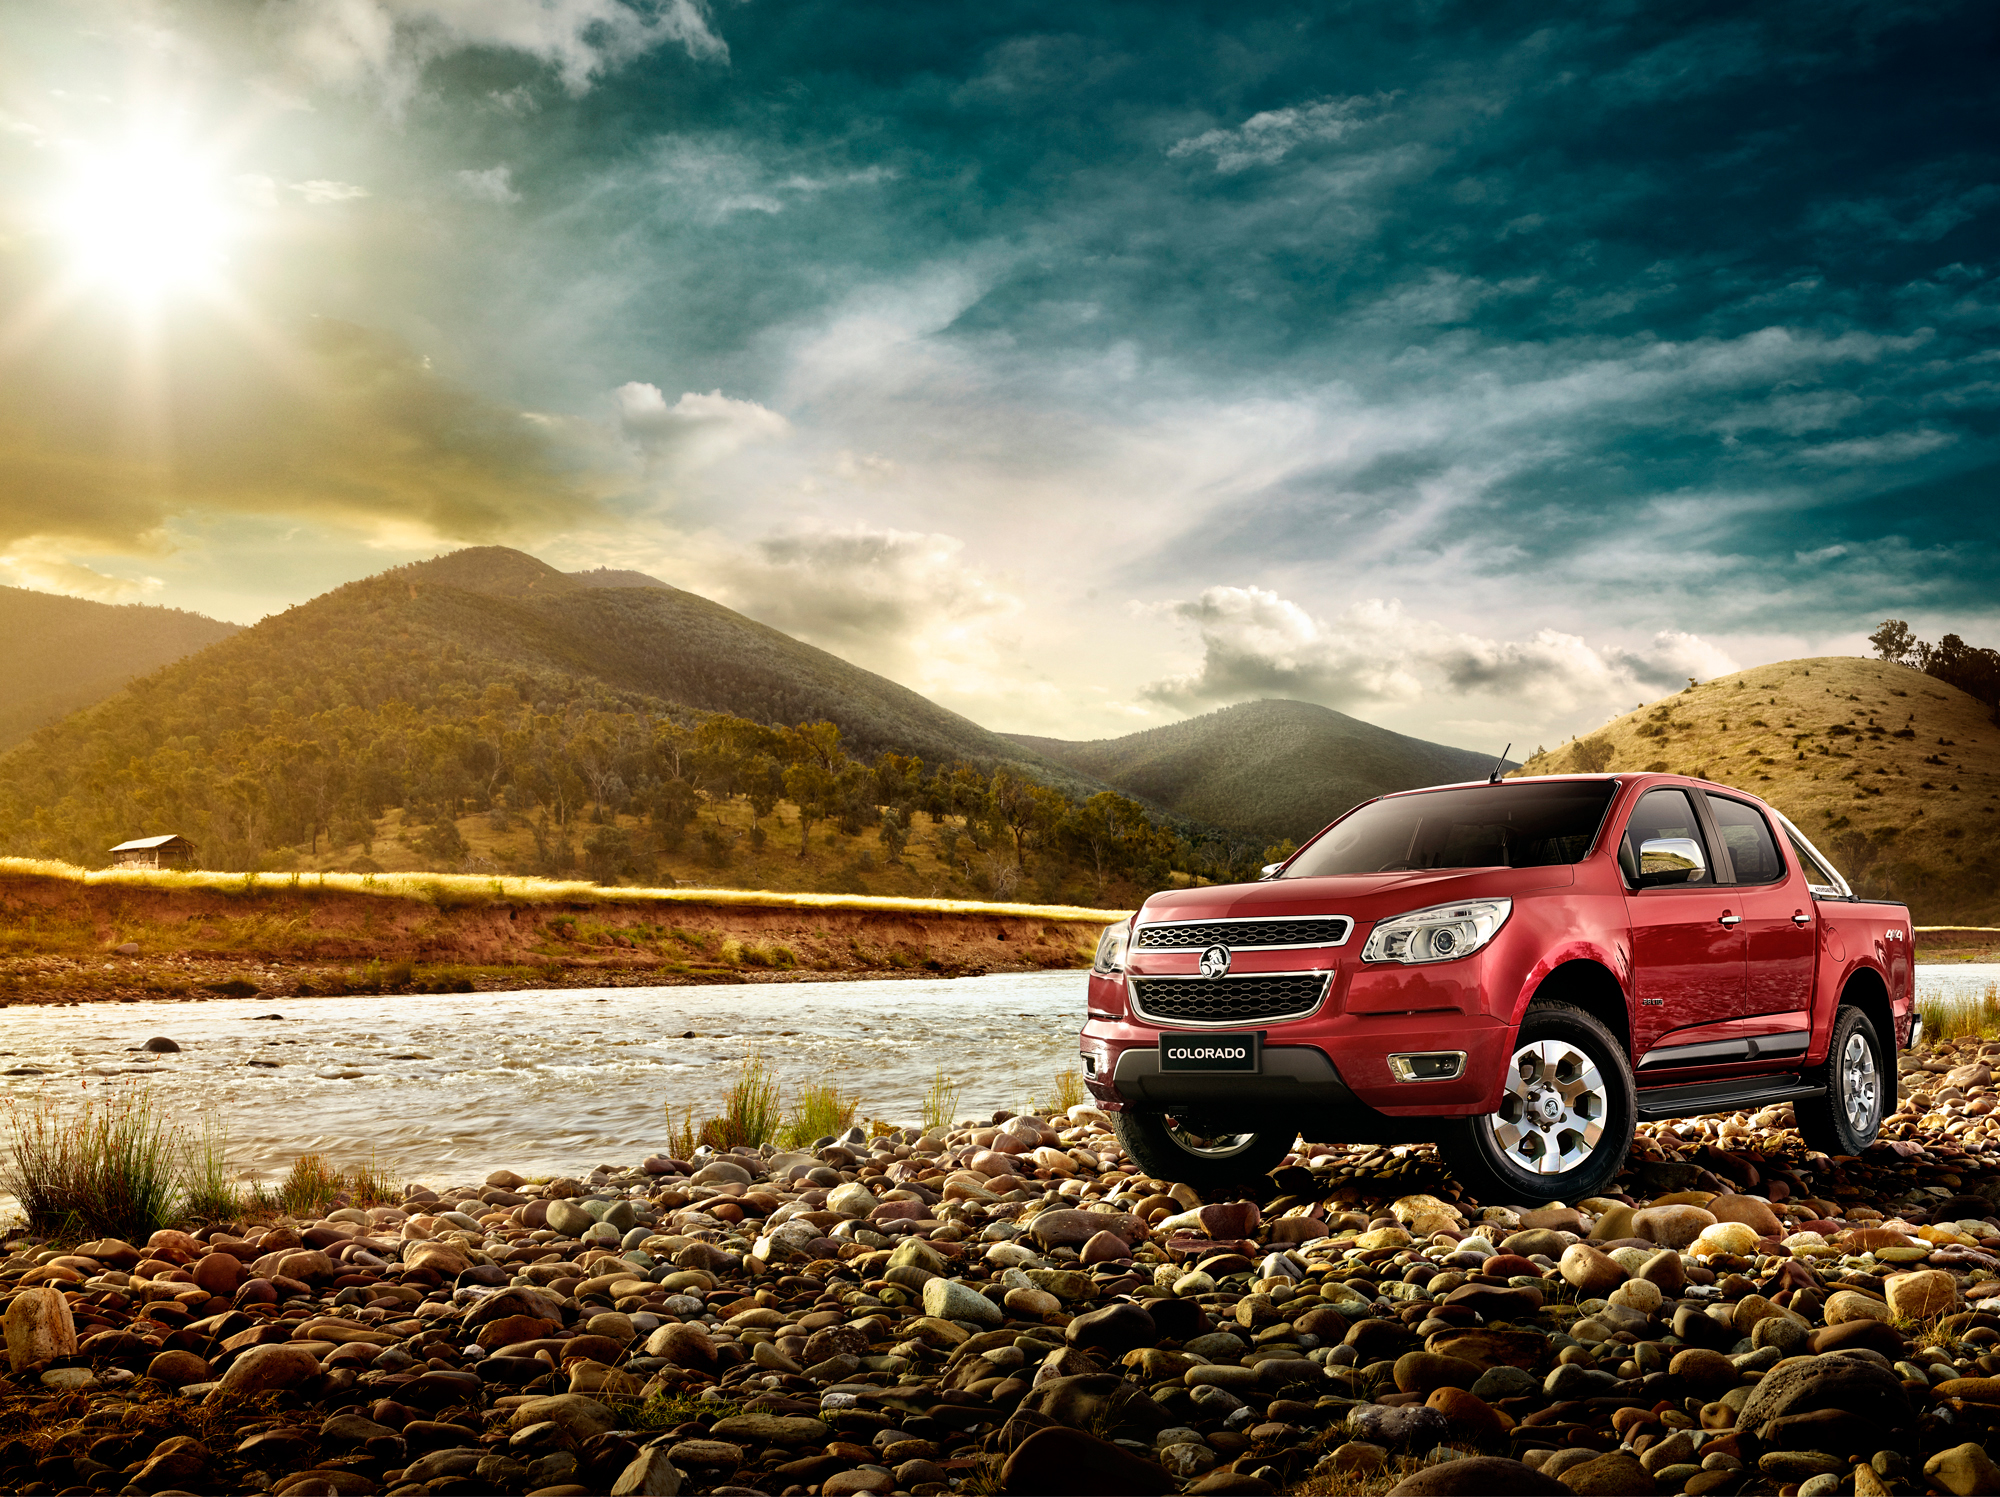 The All New Holden Colorado Tough Just Got A Whole Lot